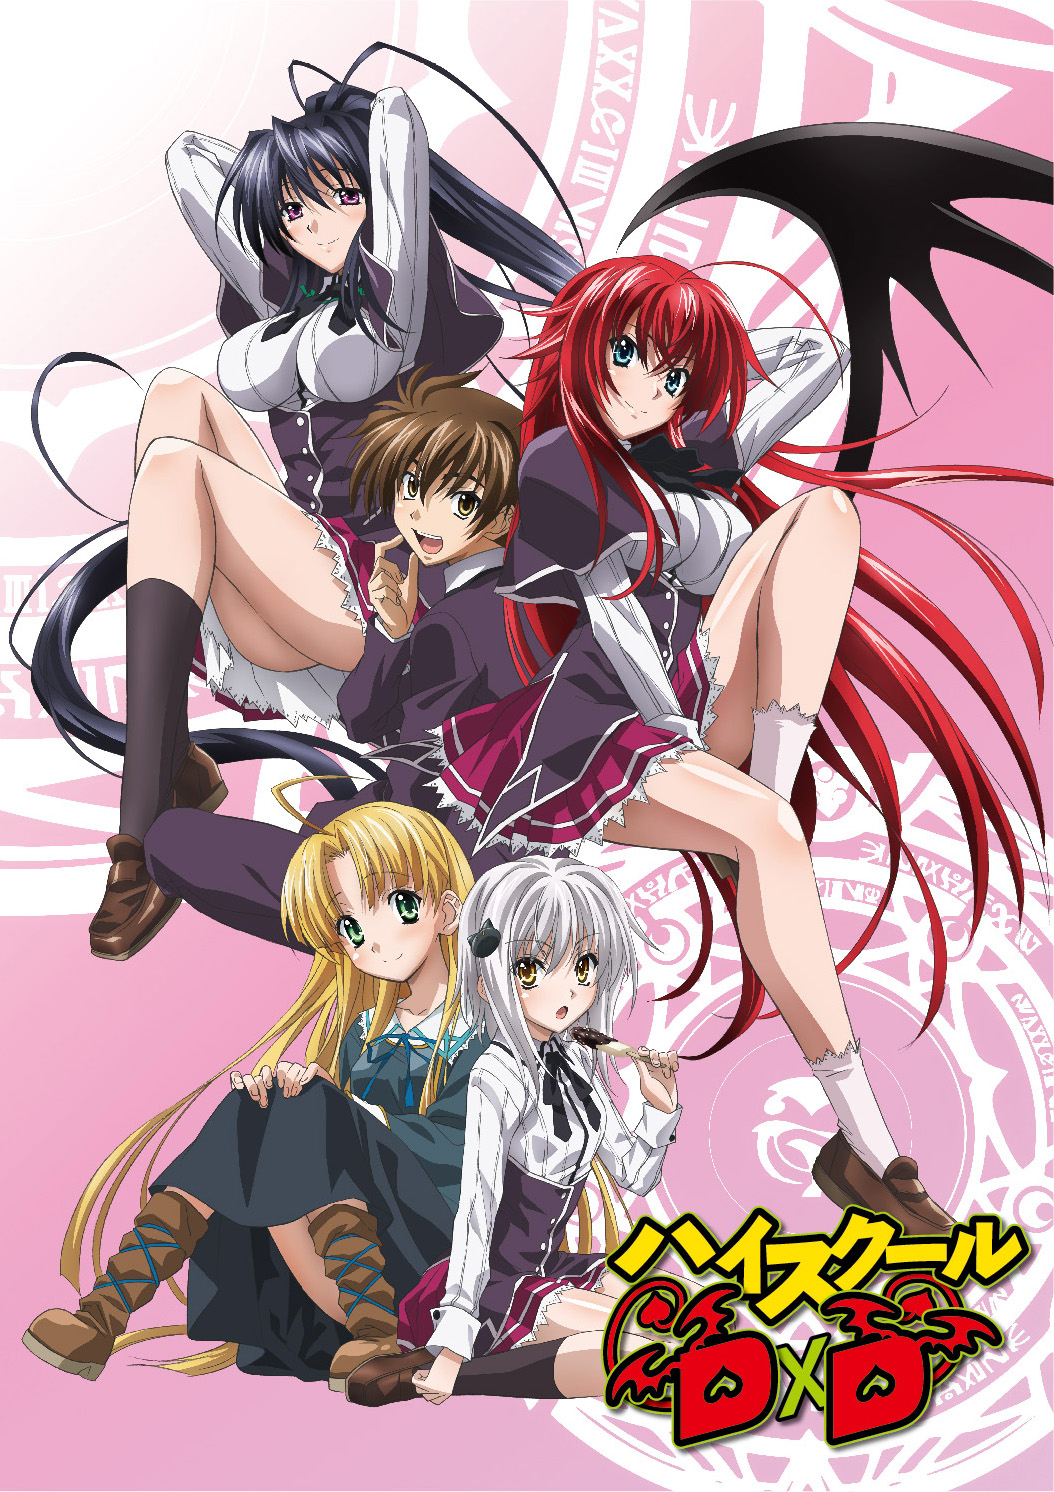 HentaiStream.com High School DxD Episode 11